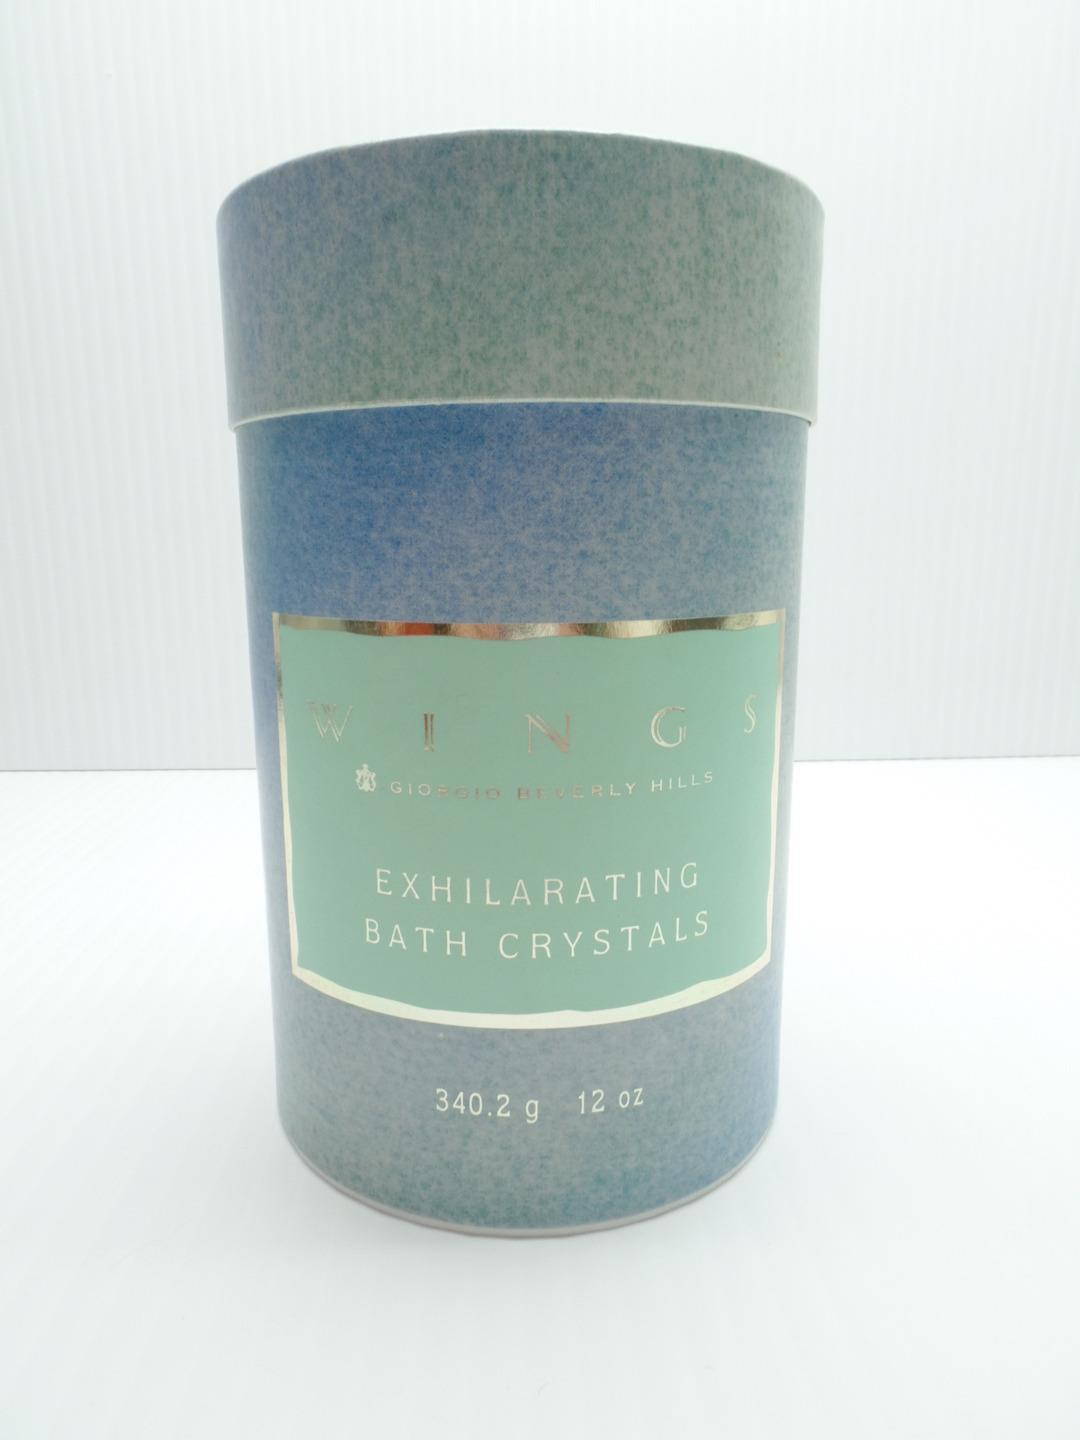 Giorgio Bath Crystals 12 oz Beverly Hills Wings Exhilarating 340.2g 19-2147 1992